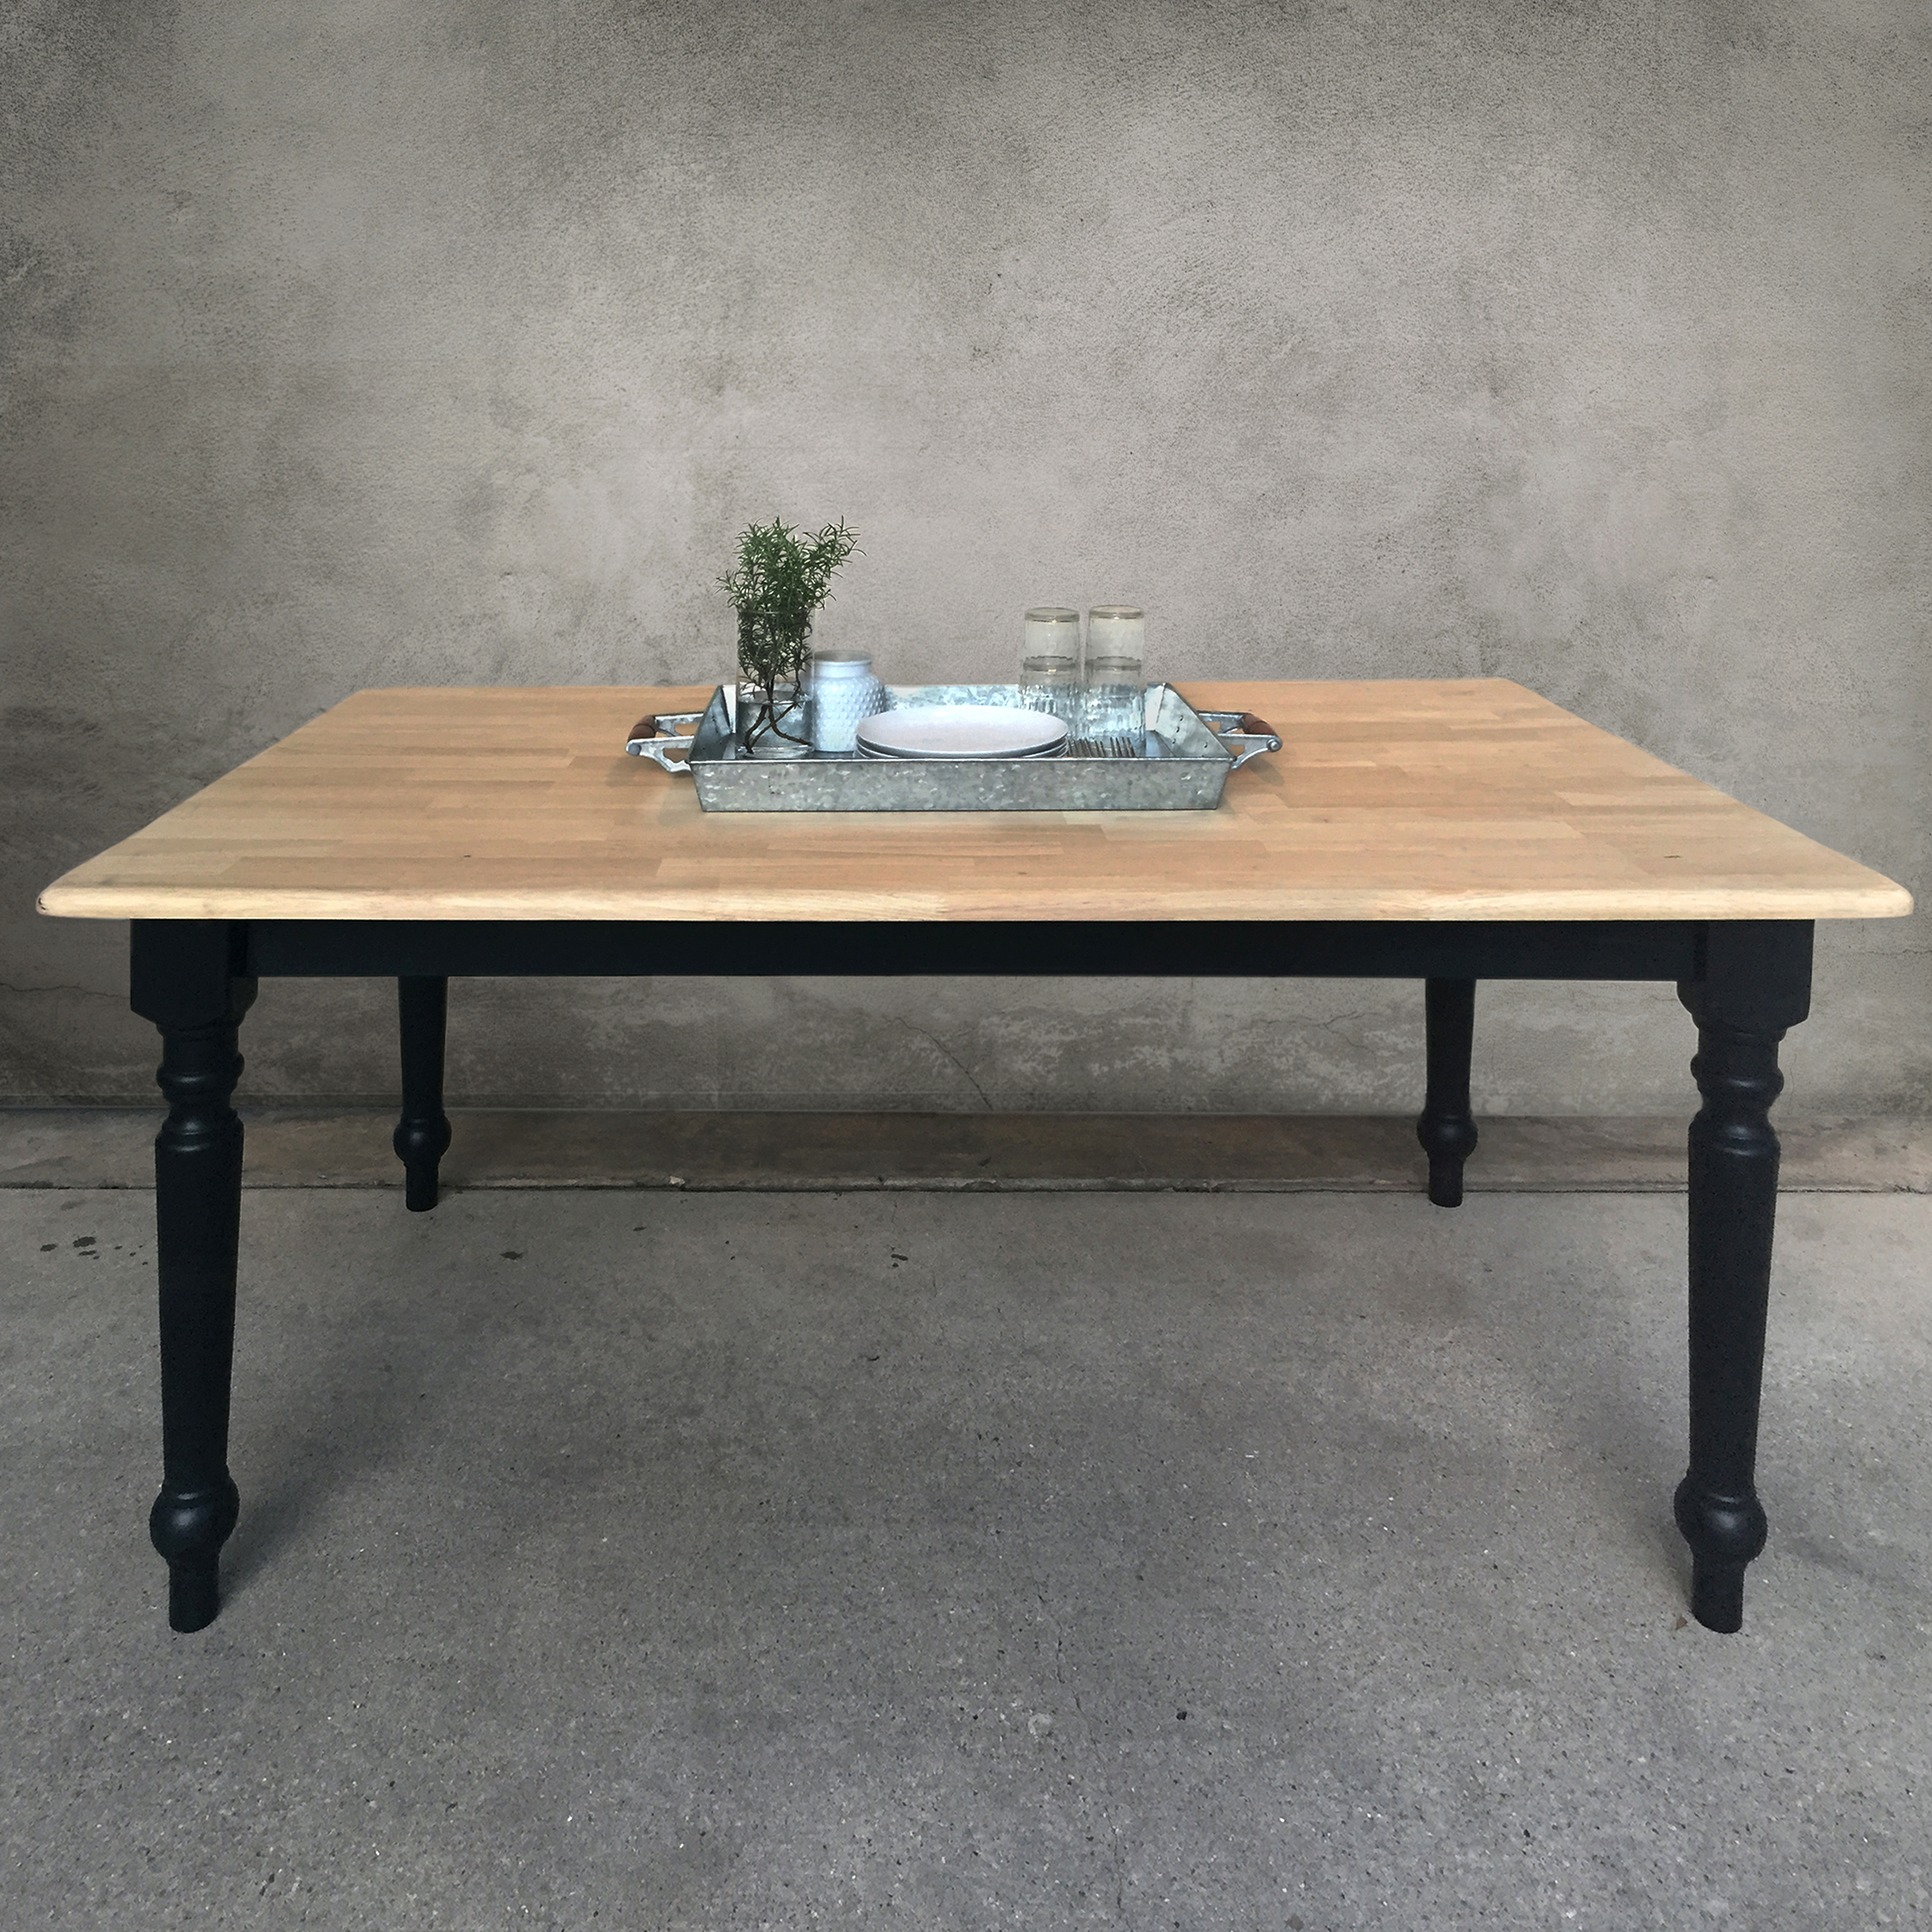 modern farmhouse table  |  $425